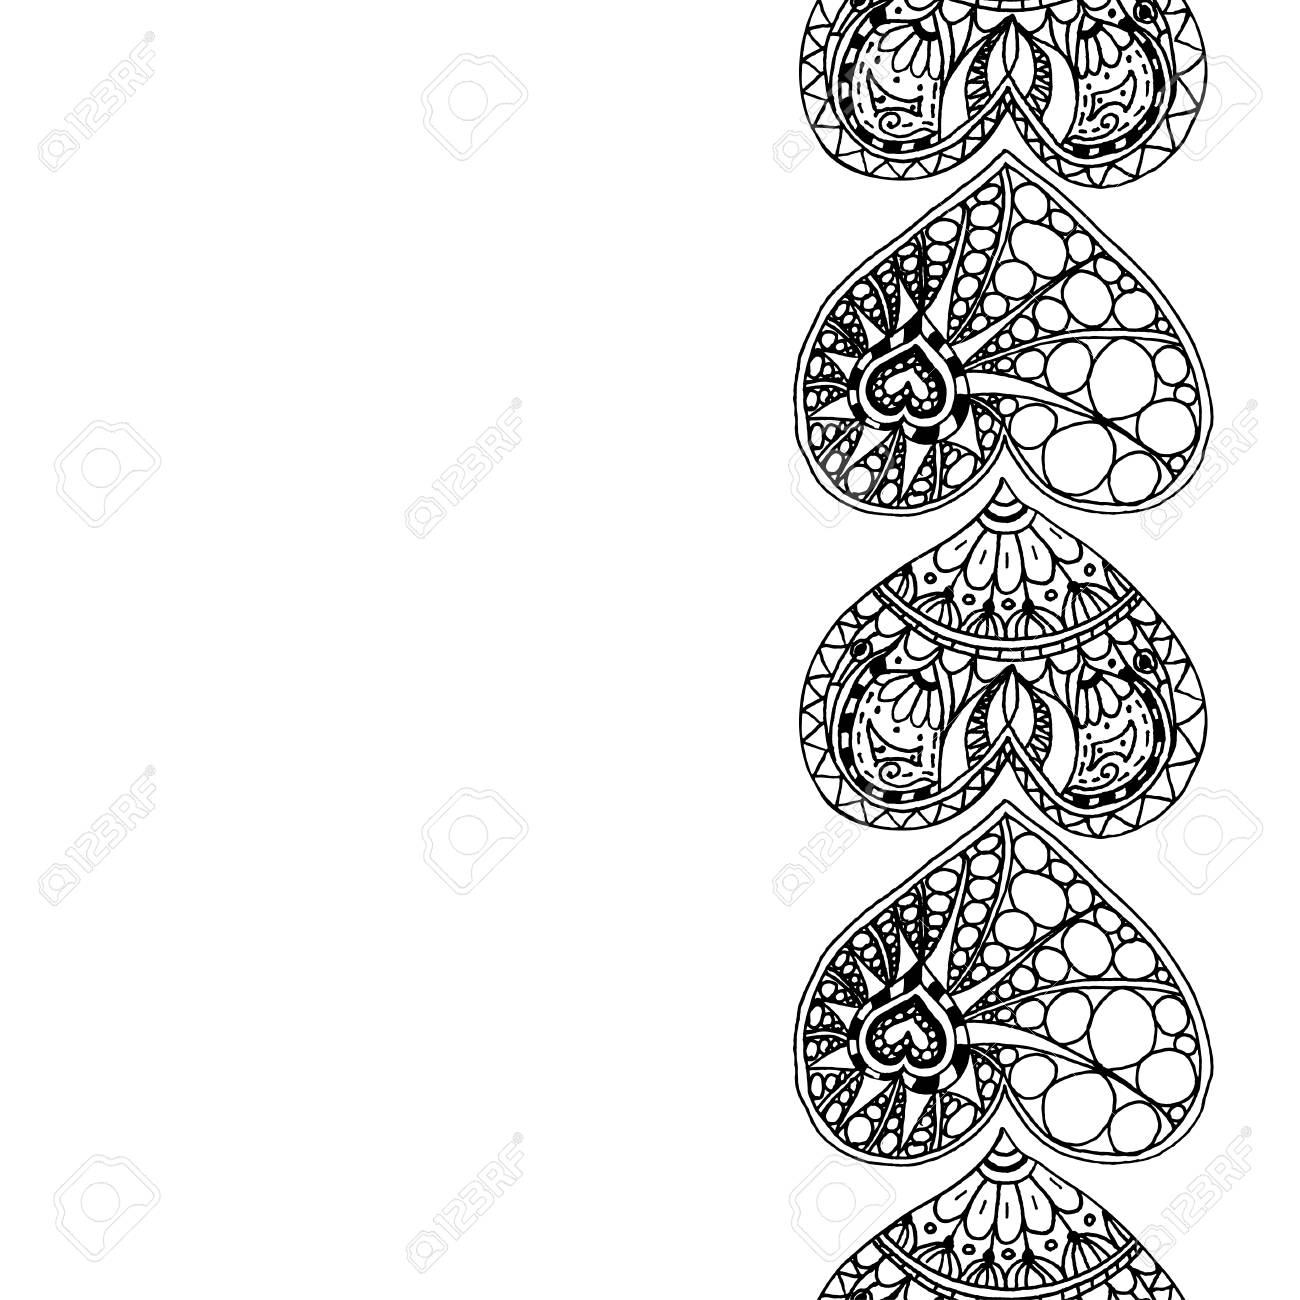 Vector Decorative Vertical Border From Black Hand Drawing Hearts